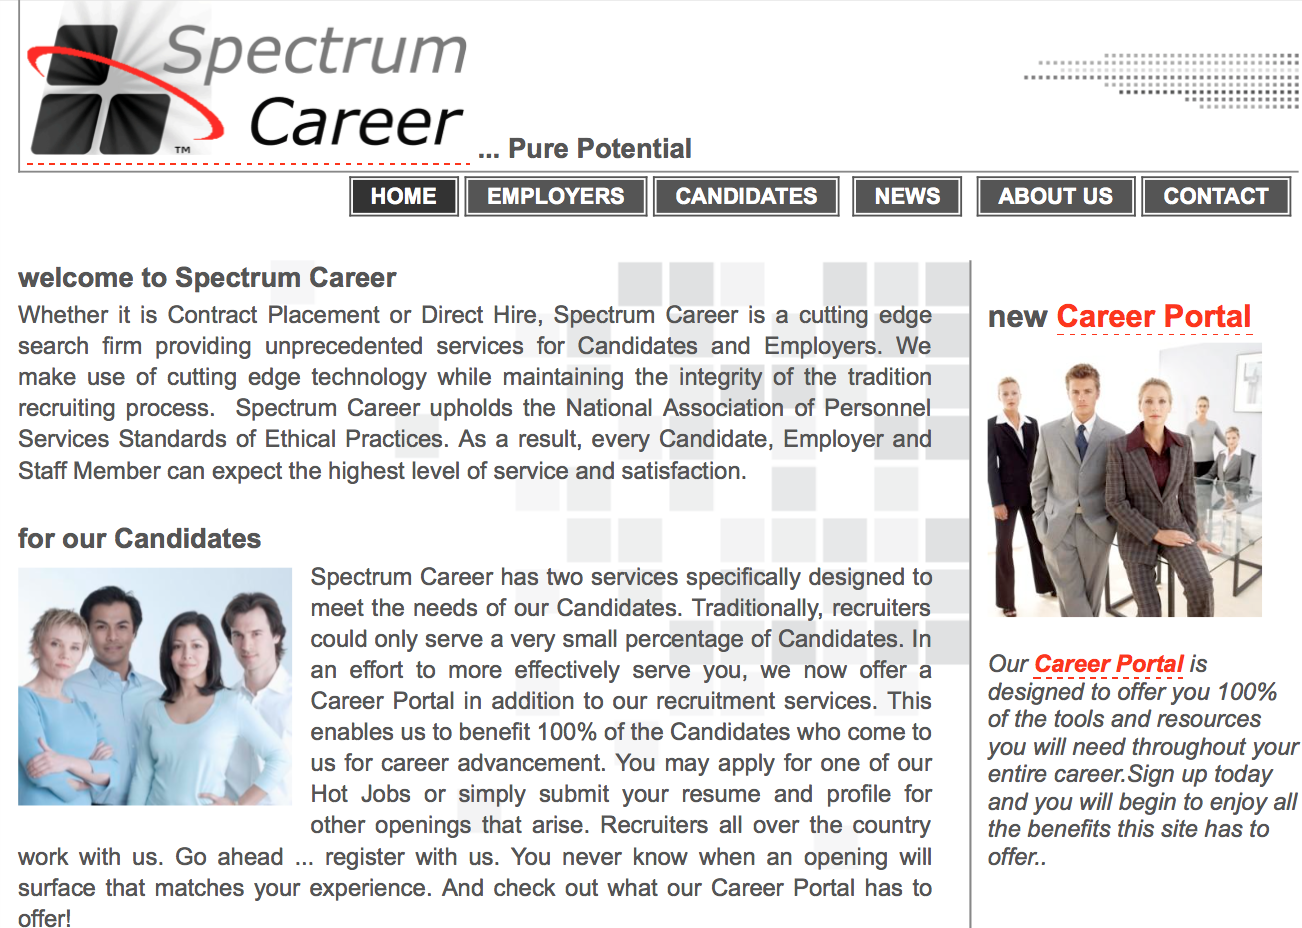 Spectrum Career Contract and Direct Placement